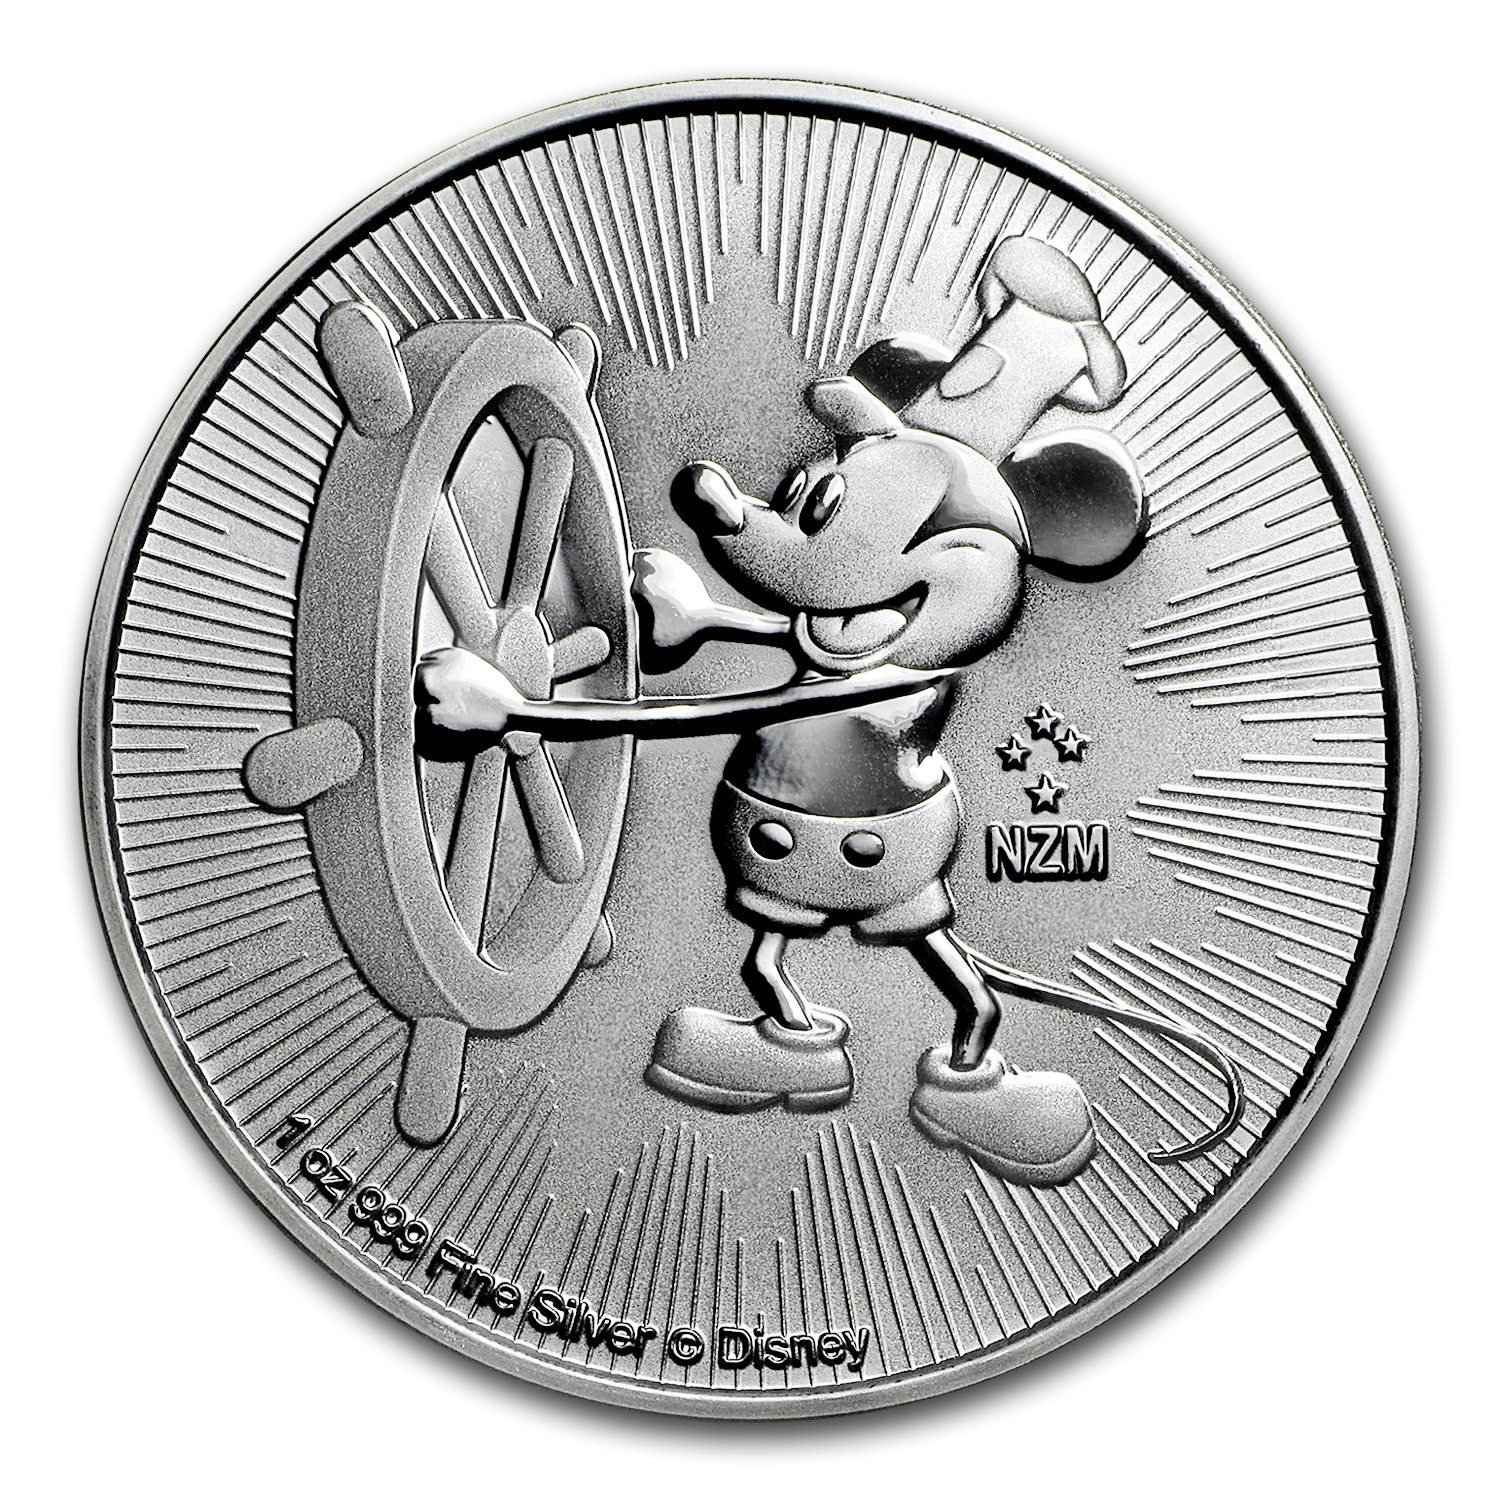 2017 Niue 1 Oz Silver 2 Disney Steamboat Willie Bu New